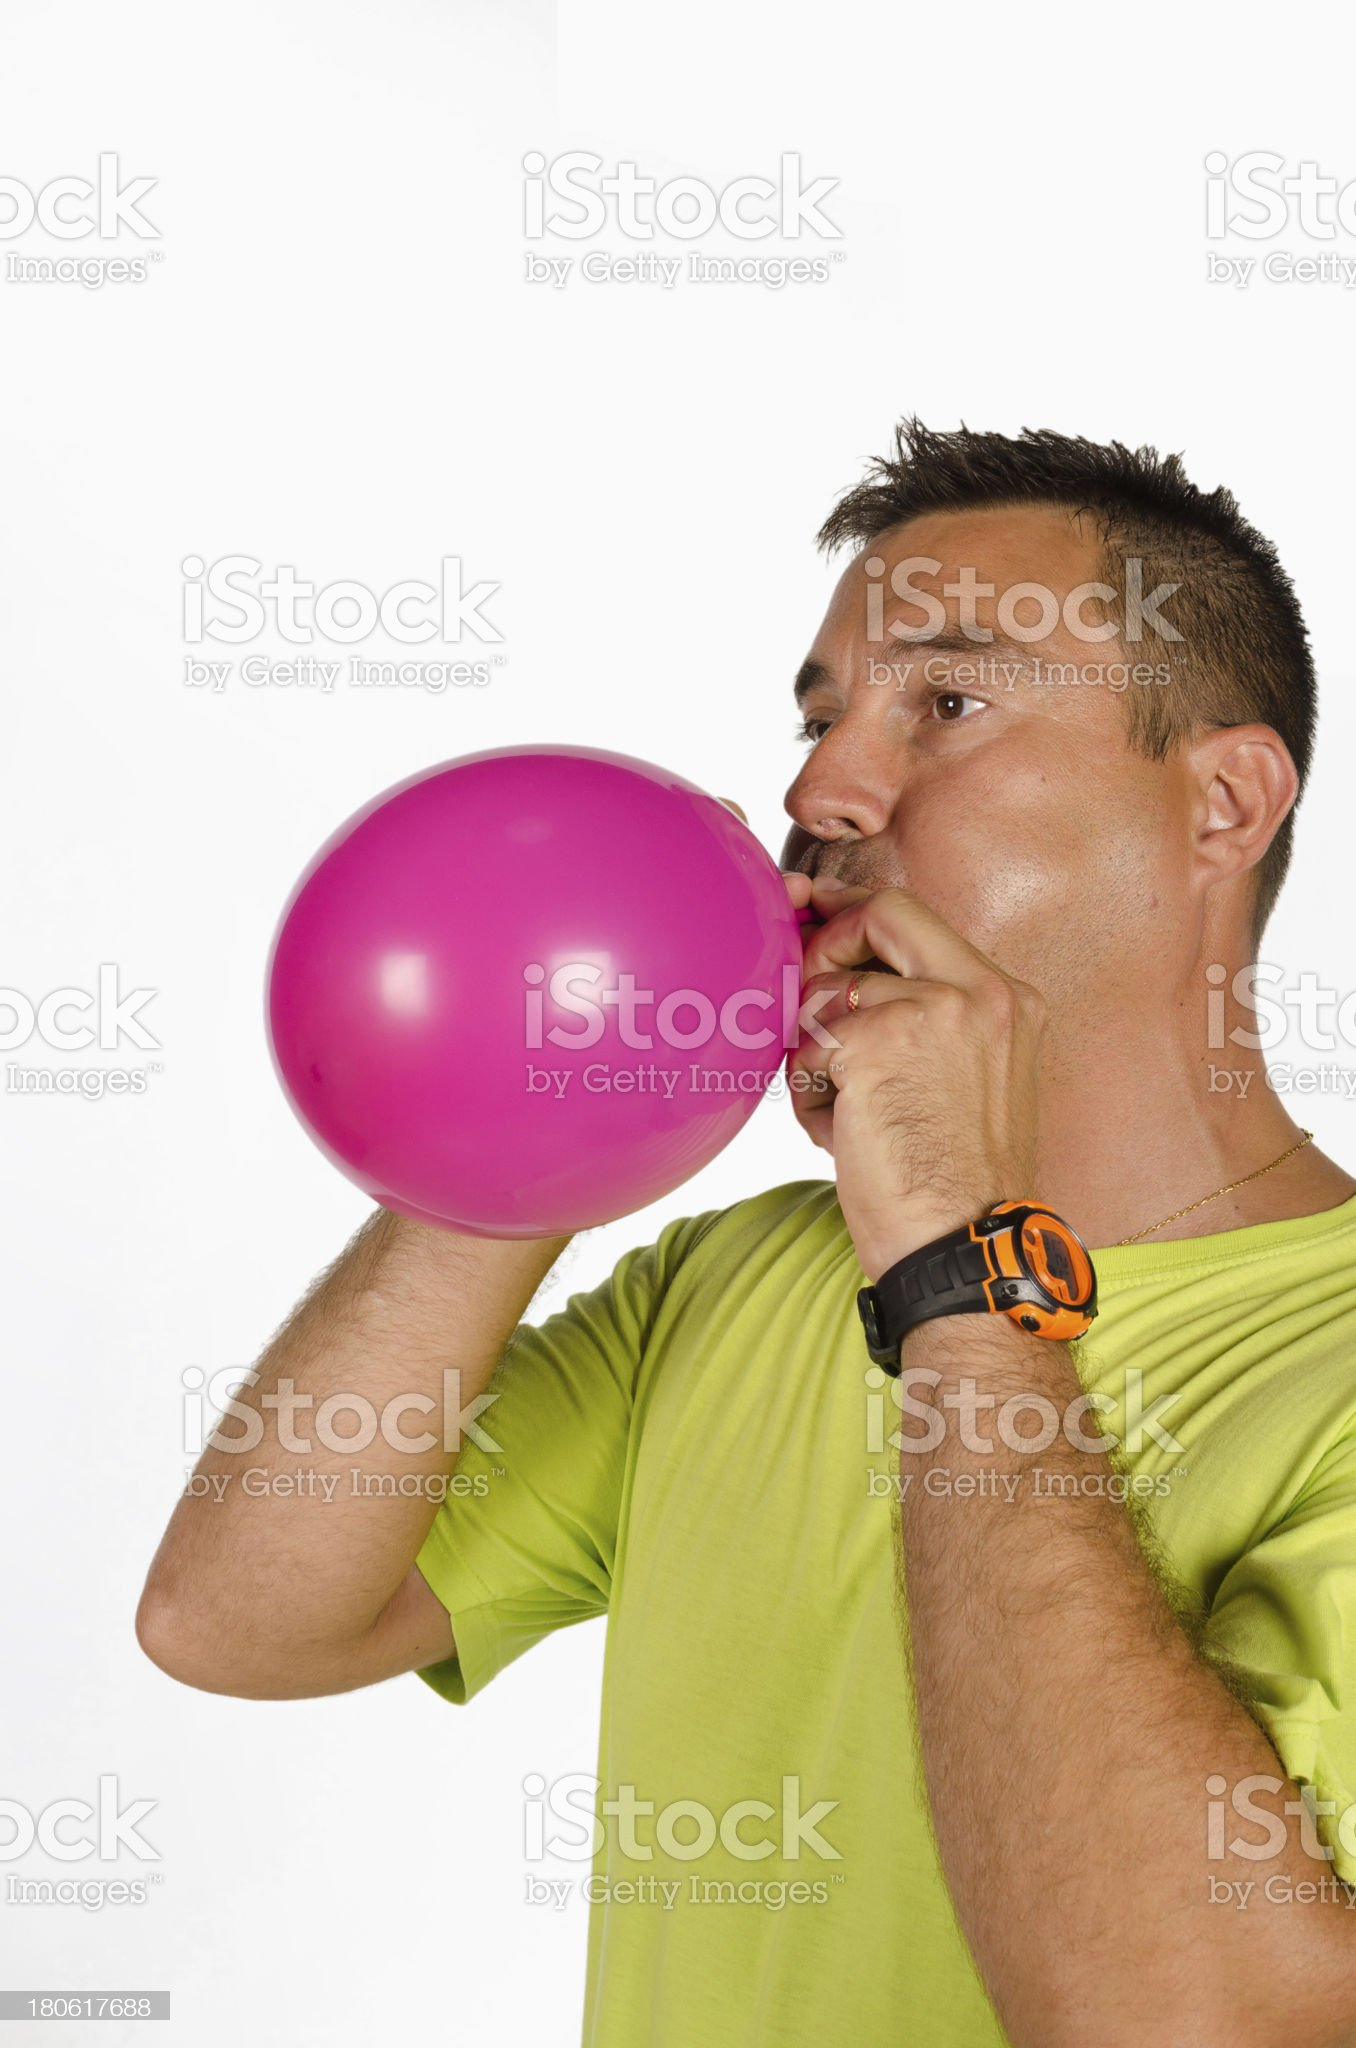 Guy blowing up a balloon royalty-free stock photo